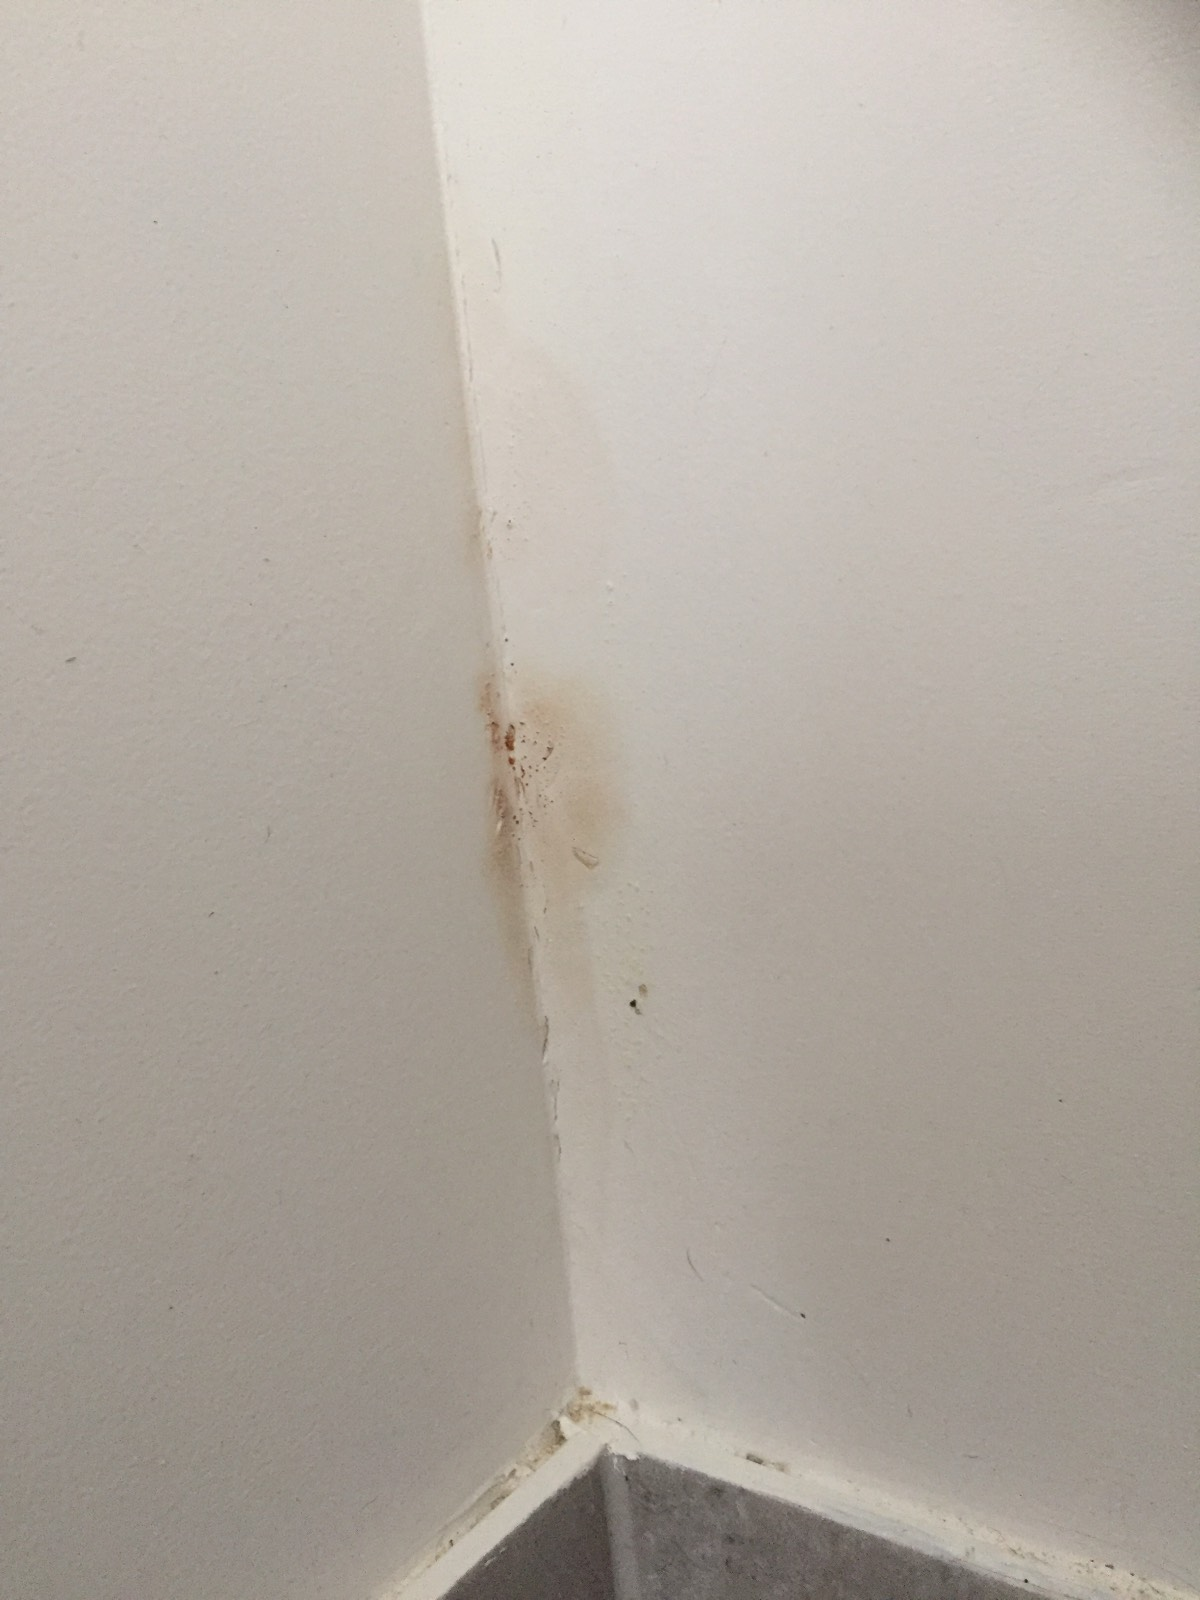 **help** is this damp or water damage